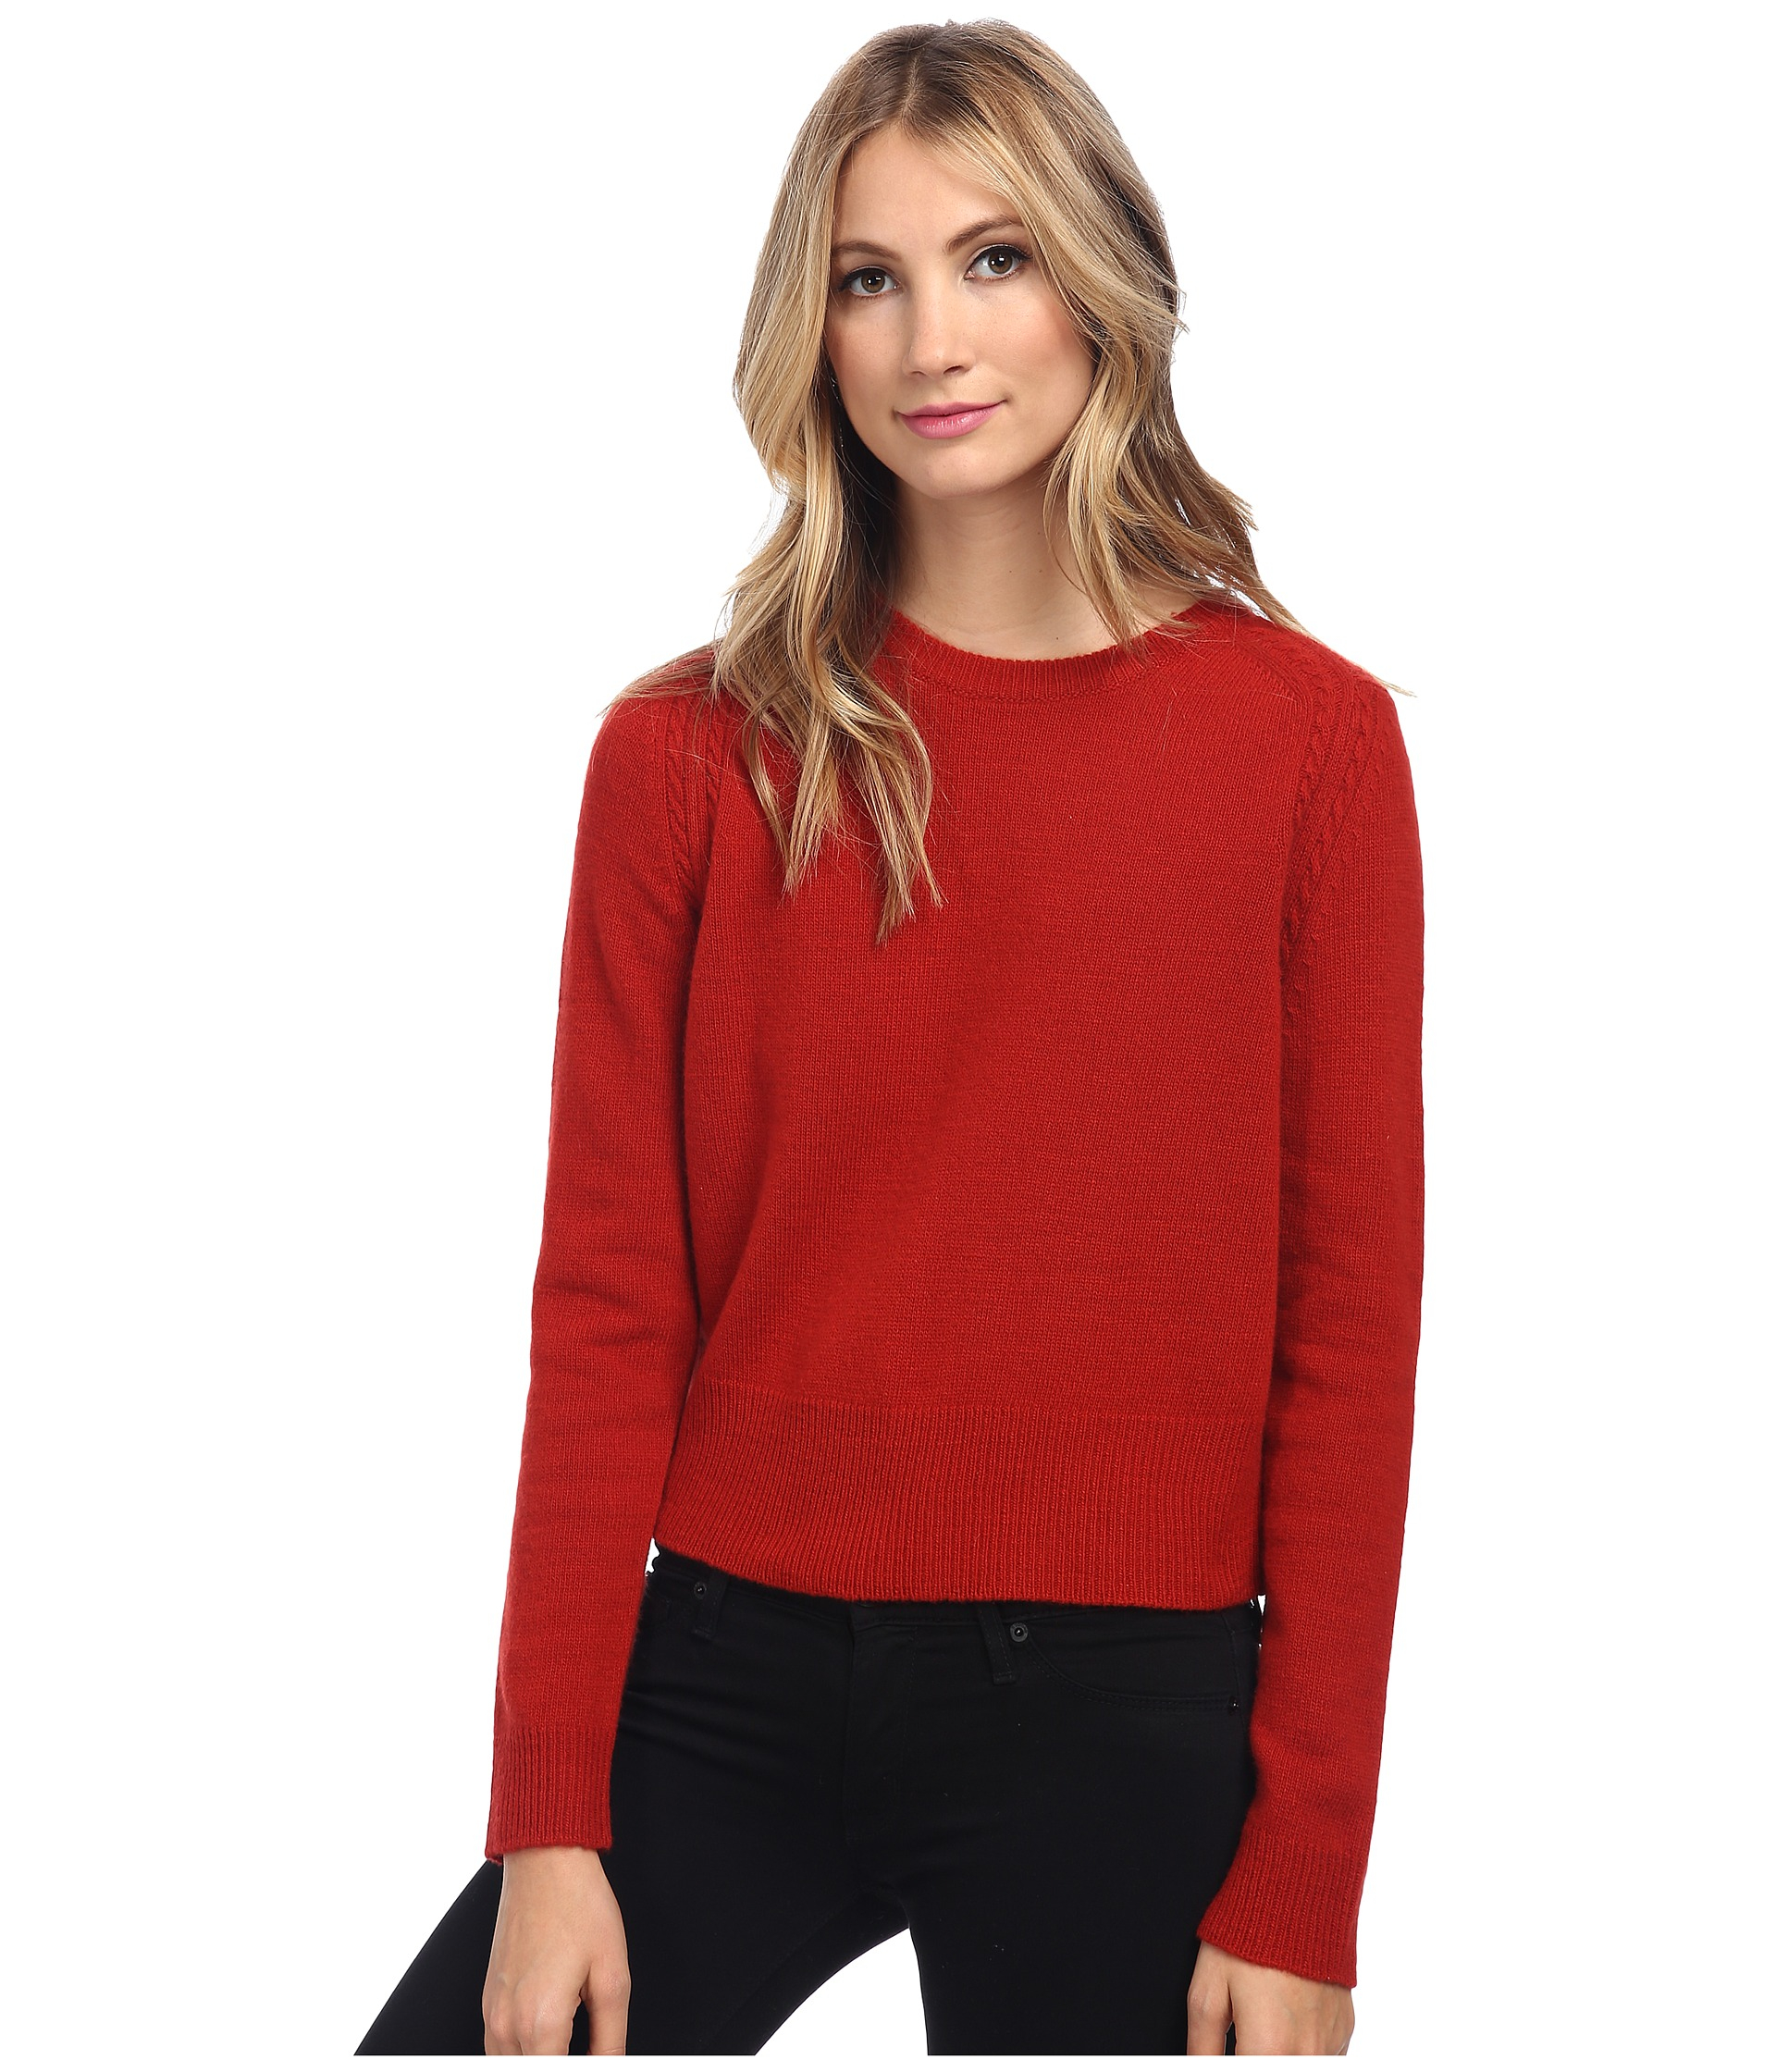 marc by marc jacobs iris sweater in red lyst. Black Bedroom Furniture Sets. Home Design Ideas